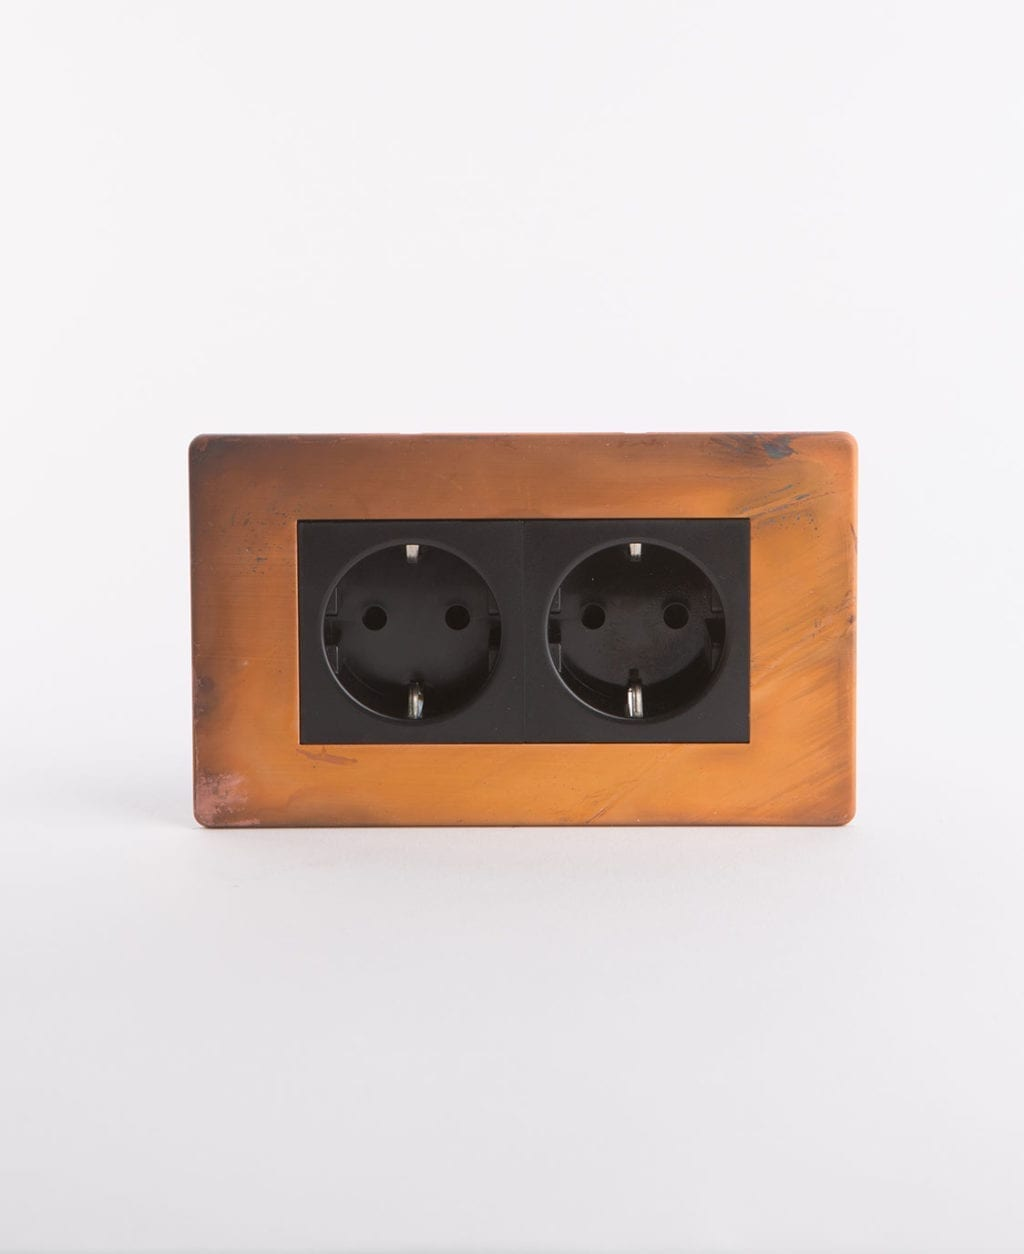 Schuko double copper socket with black inserts